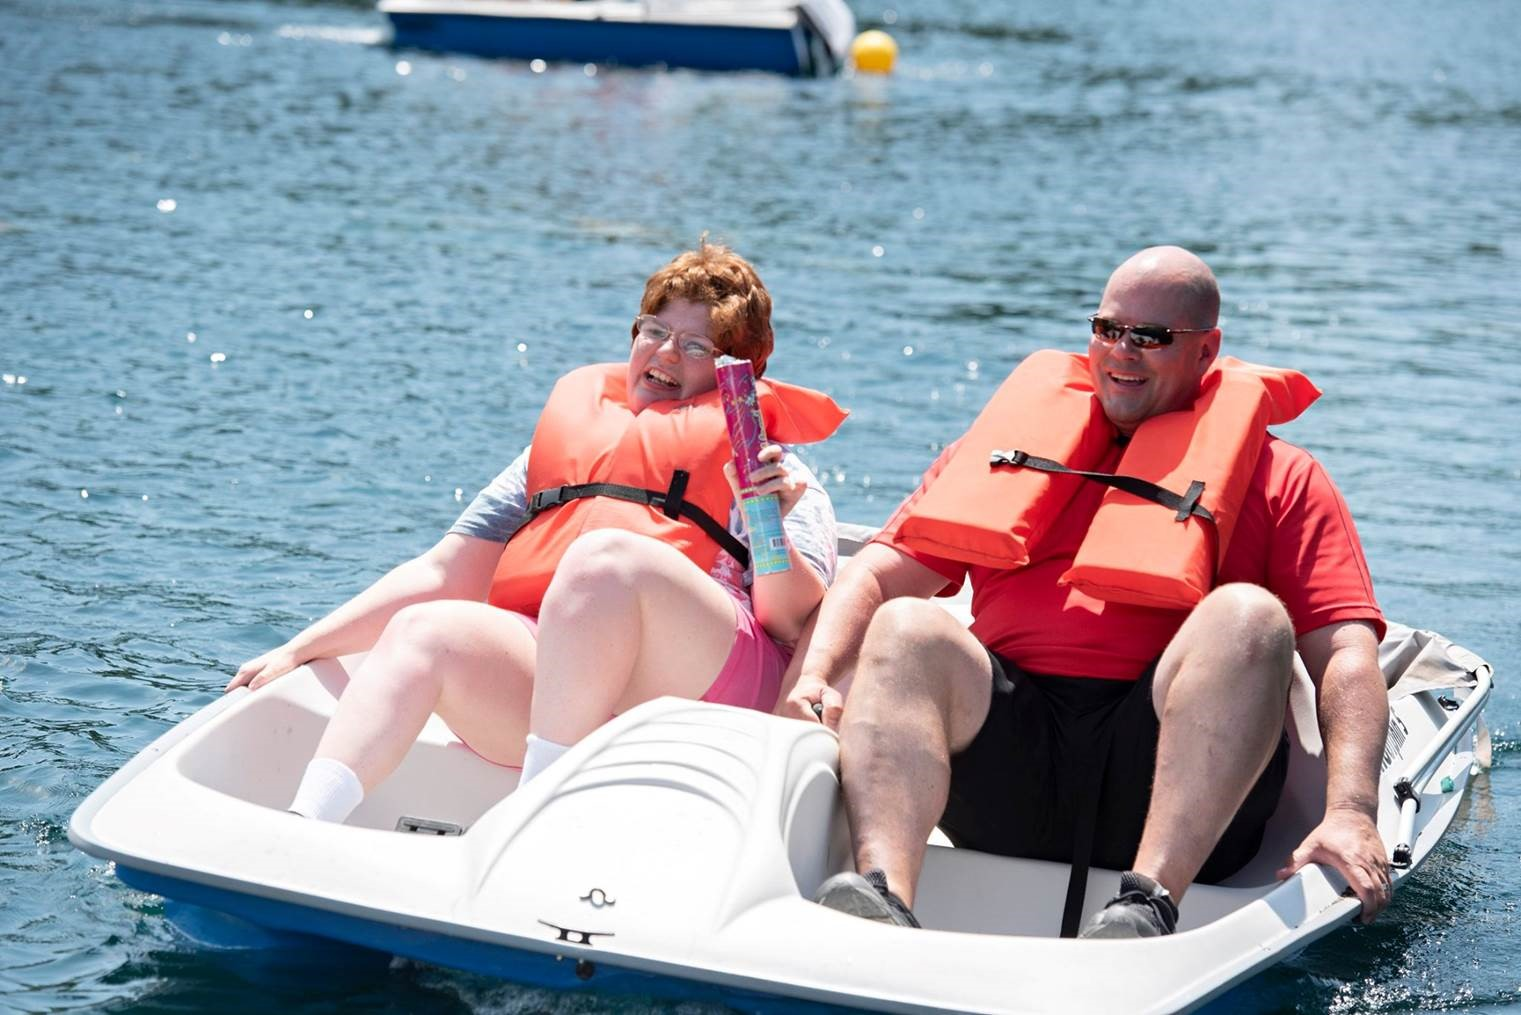 Man and woman laughing on a paddle boat